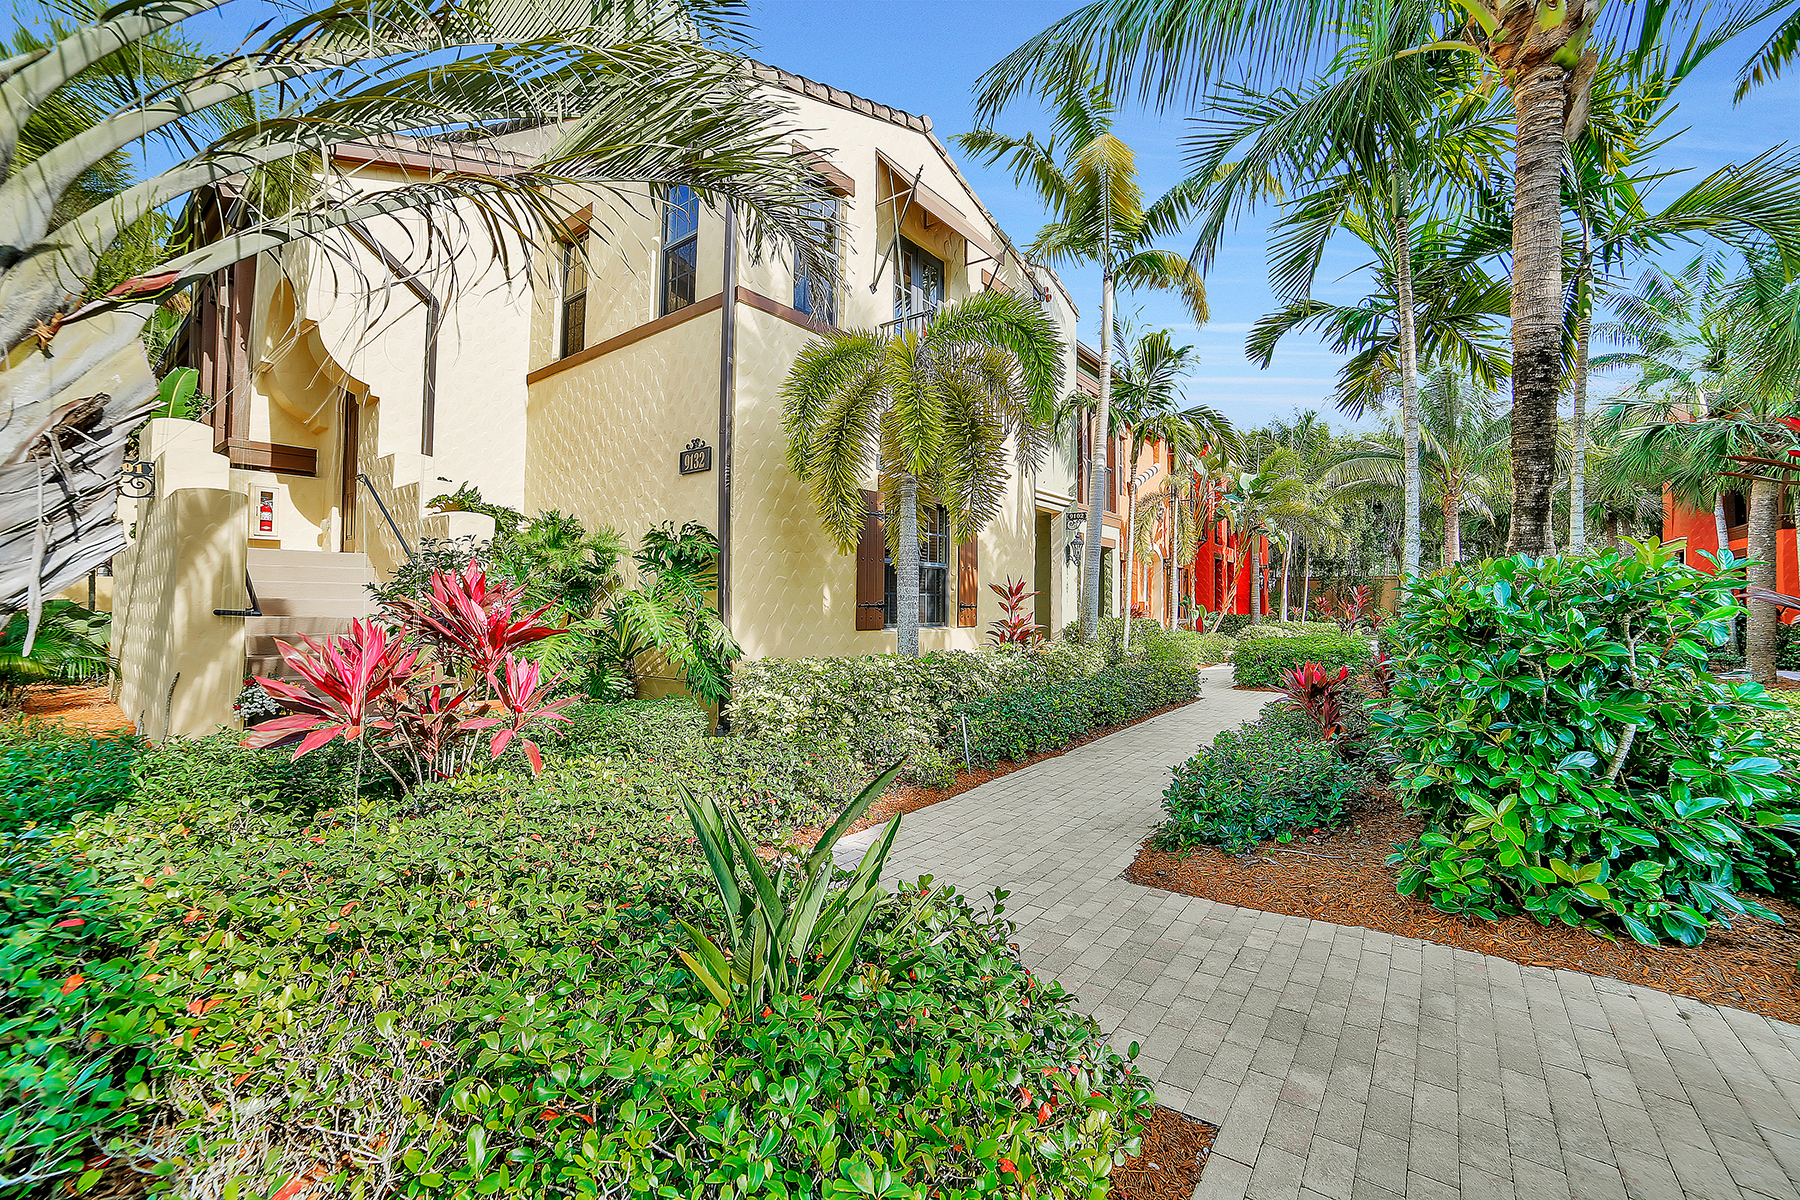 Townhouse for Sale at LELY RESORT - LELY 9132 Delano St 9101 Naples, Florida, 34113 United States